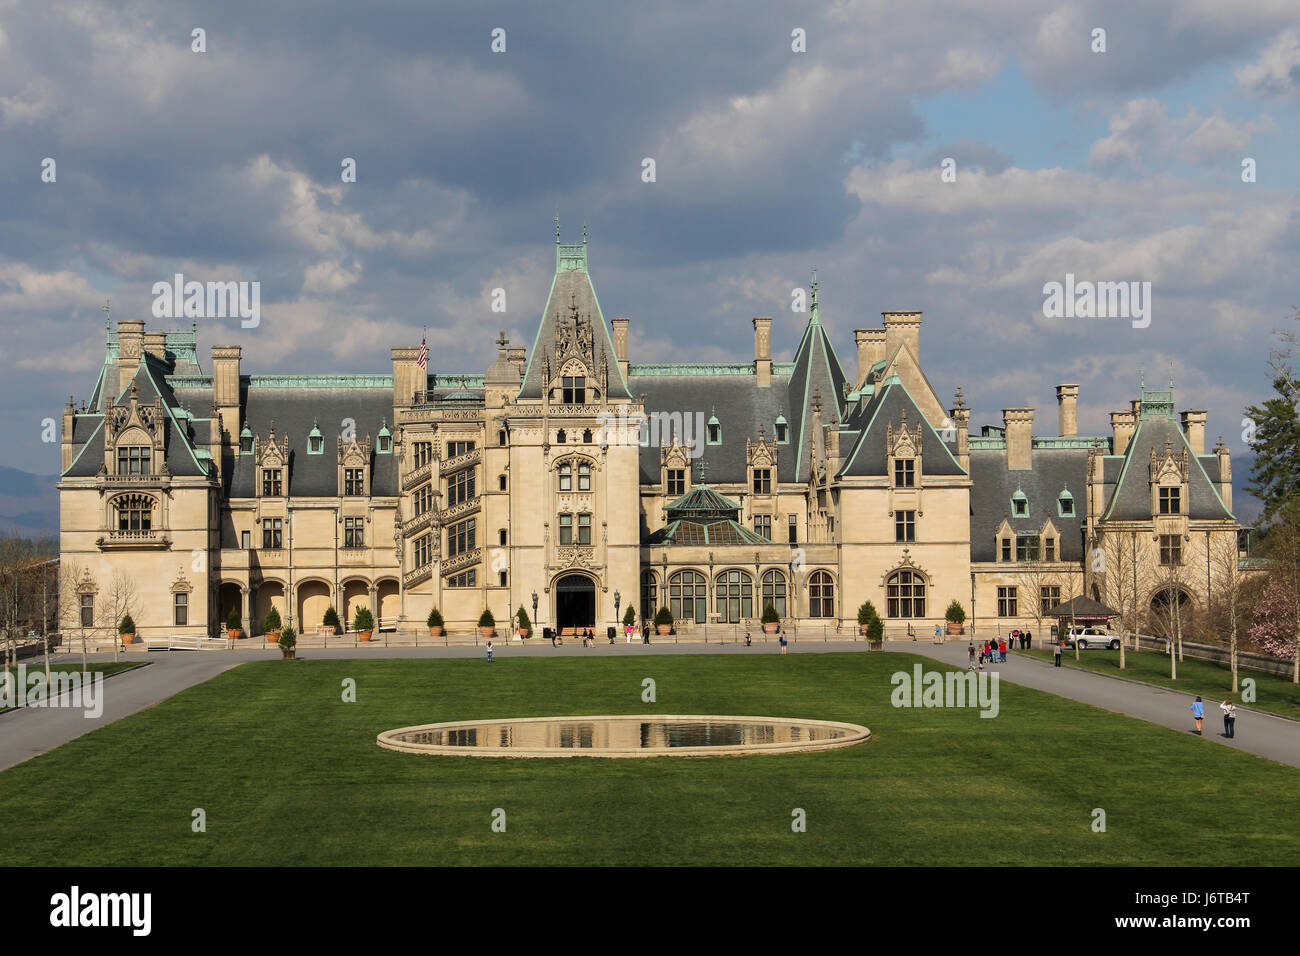 Biltmore House at the Biltmore Mansion in Asheville, North Carolina.  Sun on the house and clouds in the sky. - Stock Image